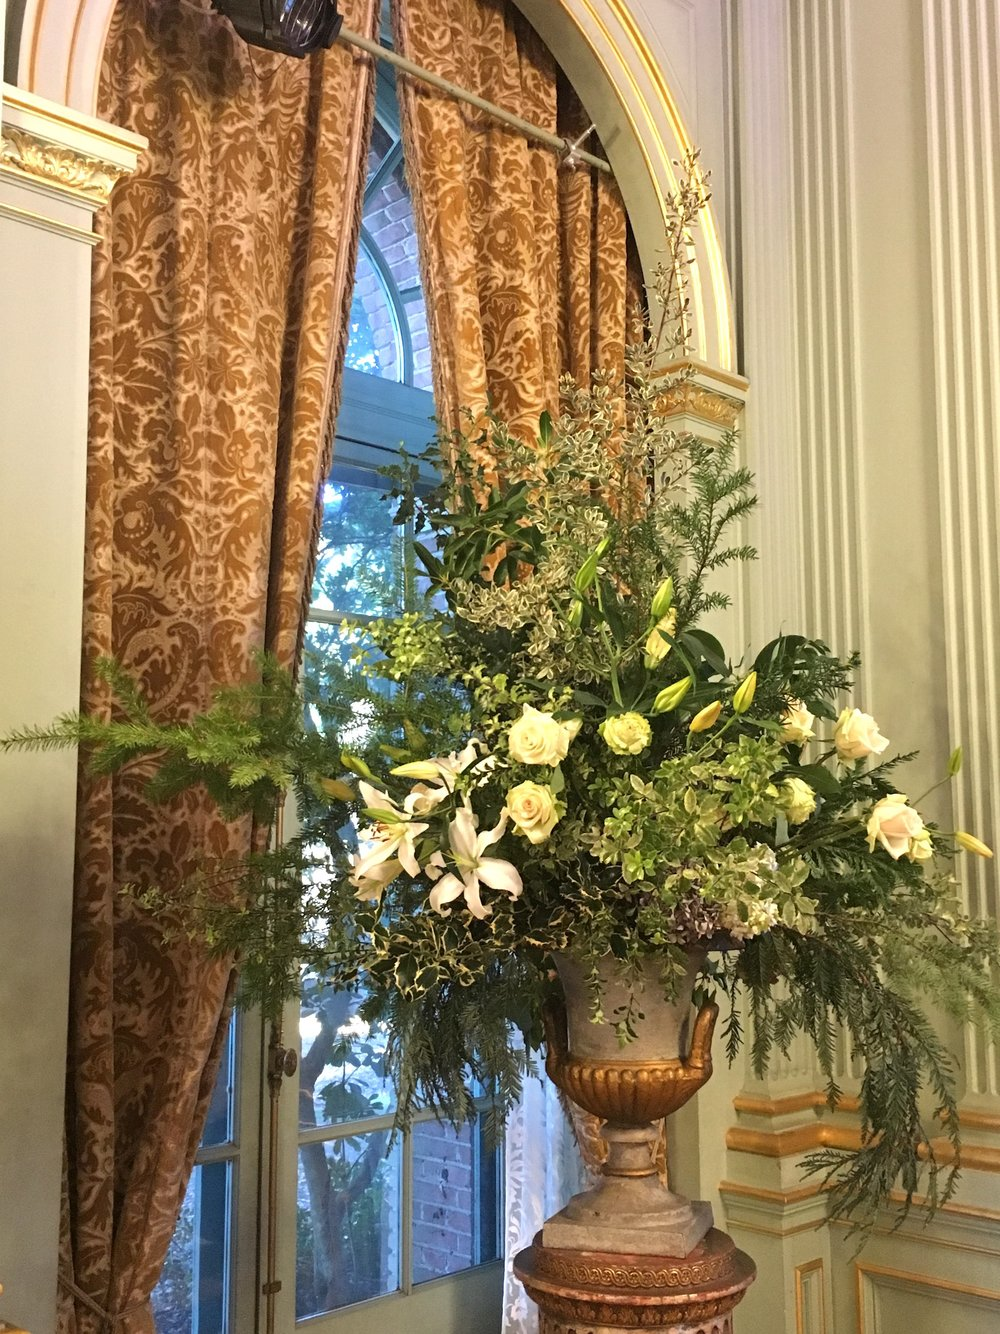 The flower arrangements throughout the house are stunning.